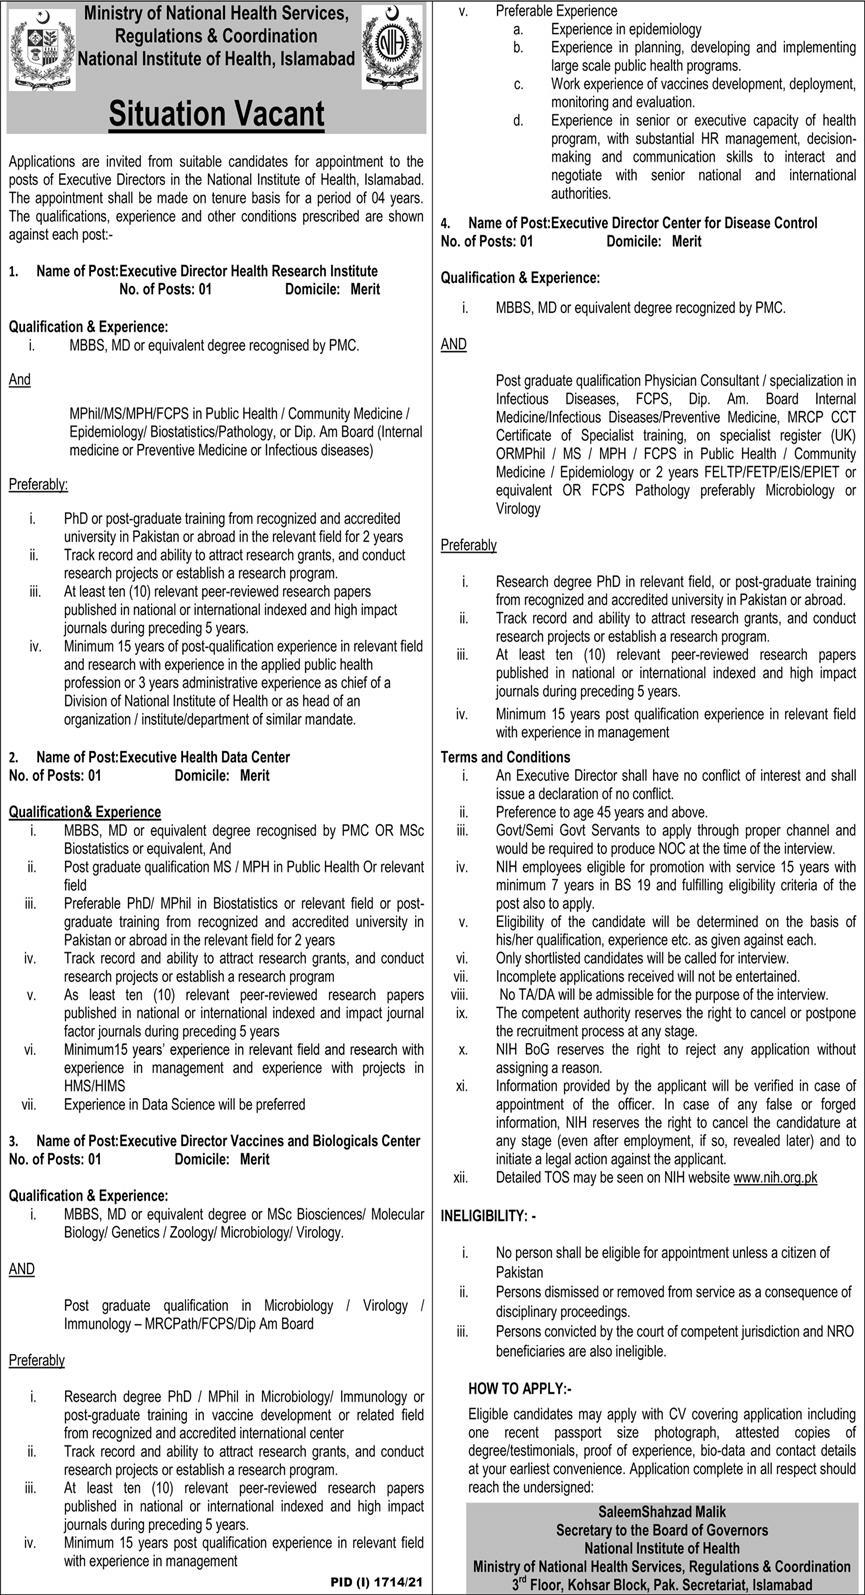 Ministry of National Health Services, Regulations & Coordination National Institute of Health Jobs